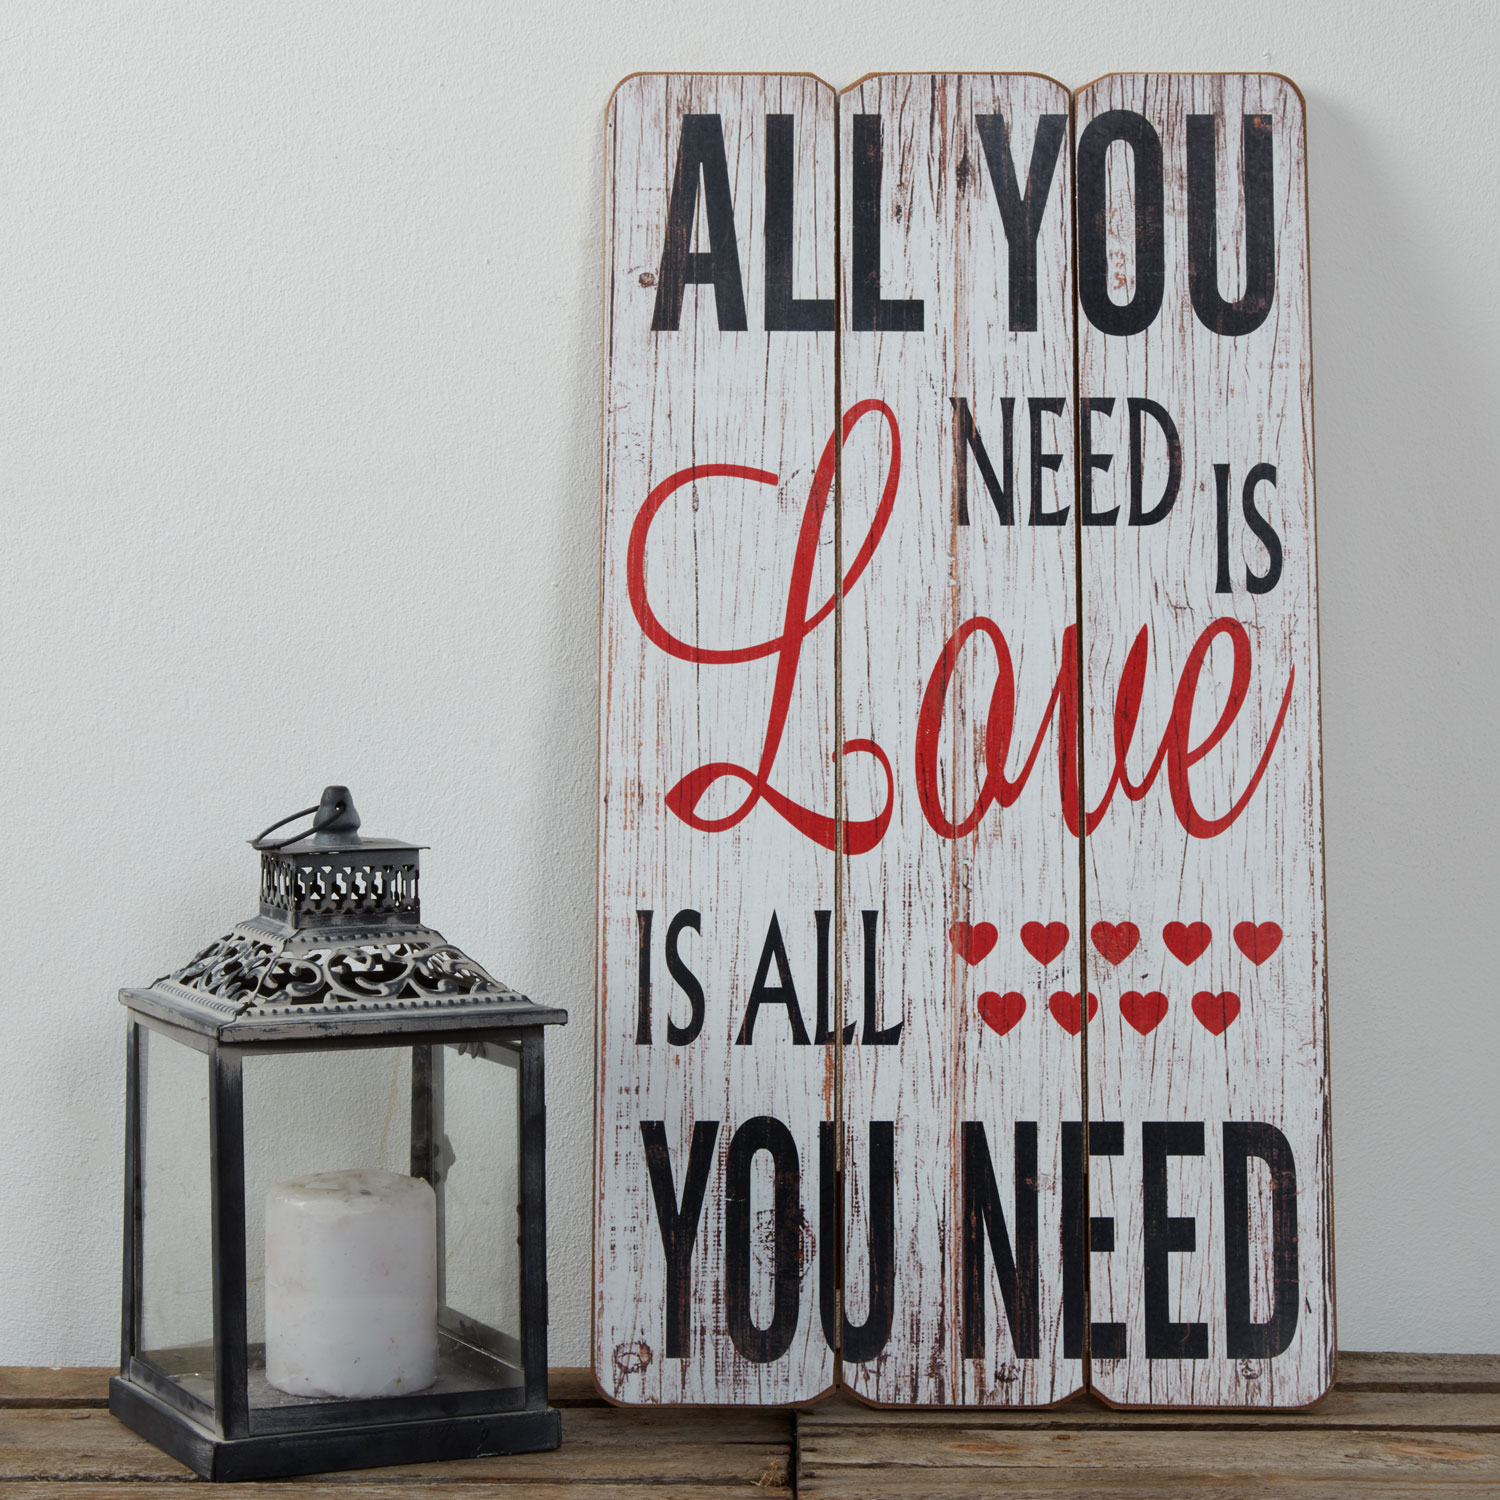 Stockists of All You Need Is Love Wooden Plaque